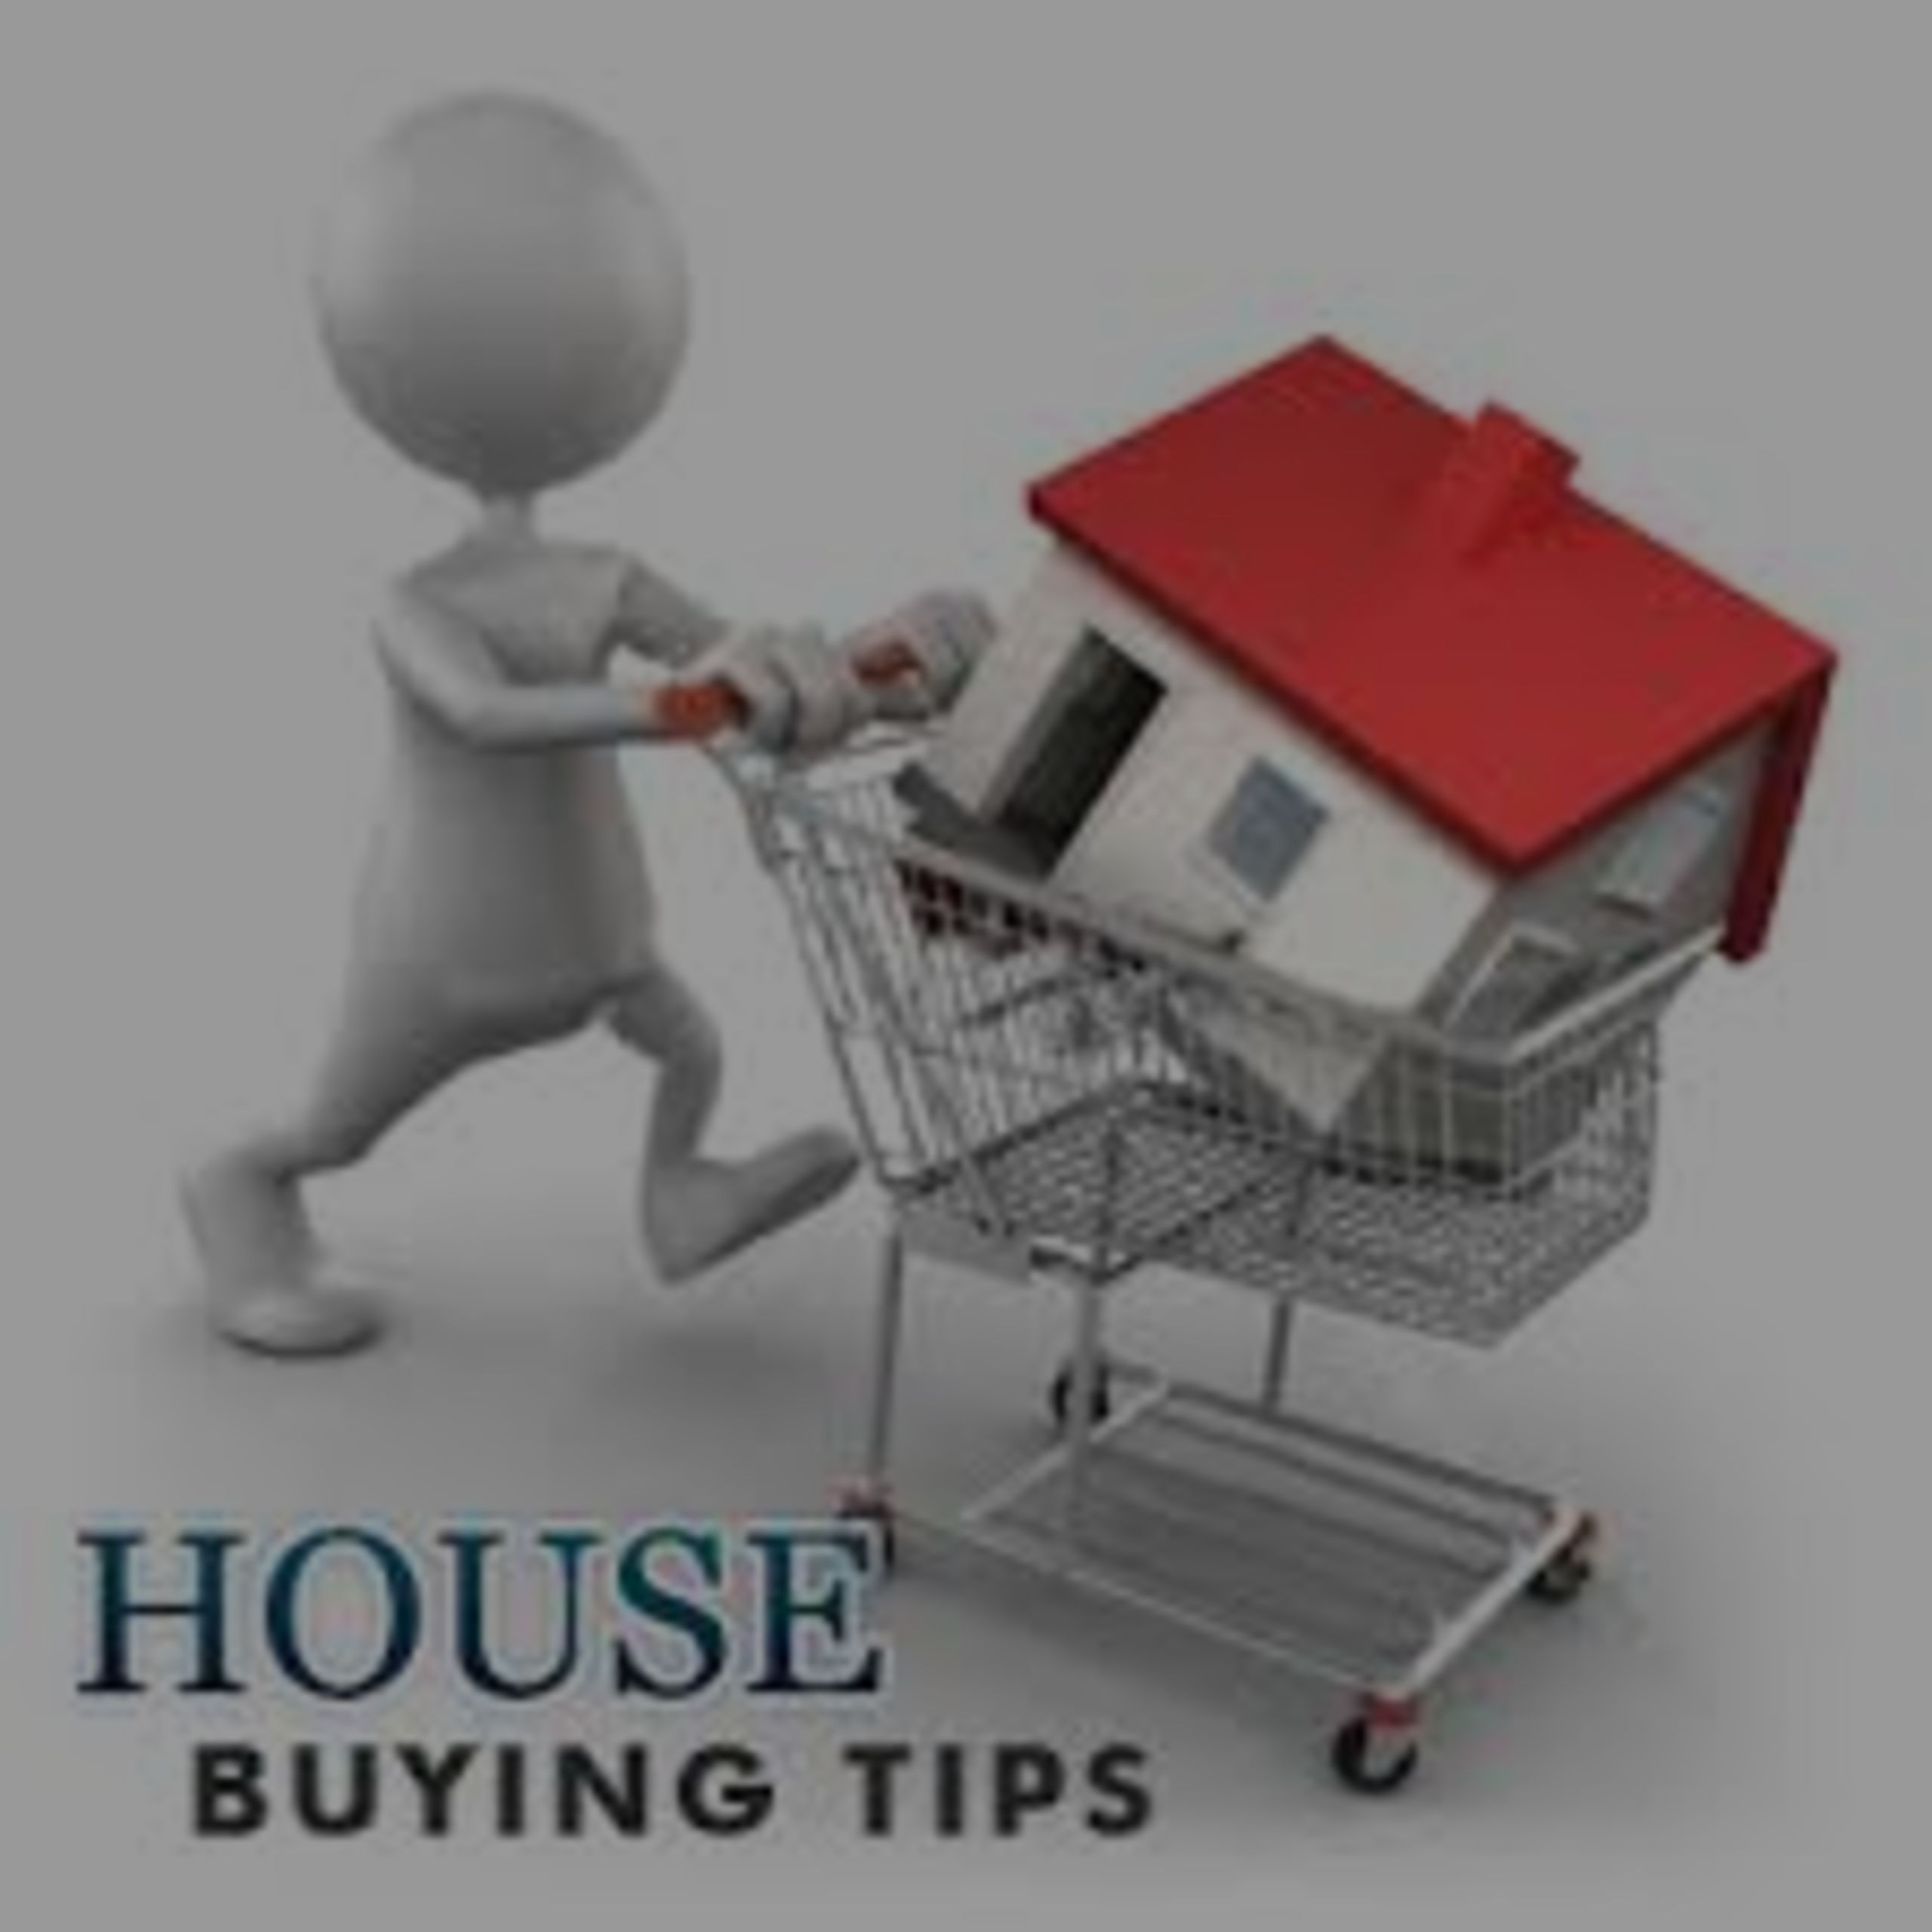 Simple steps to help you buy the right home